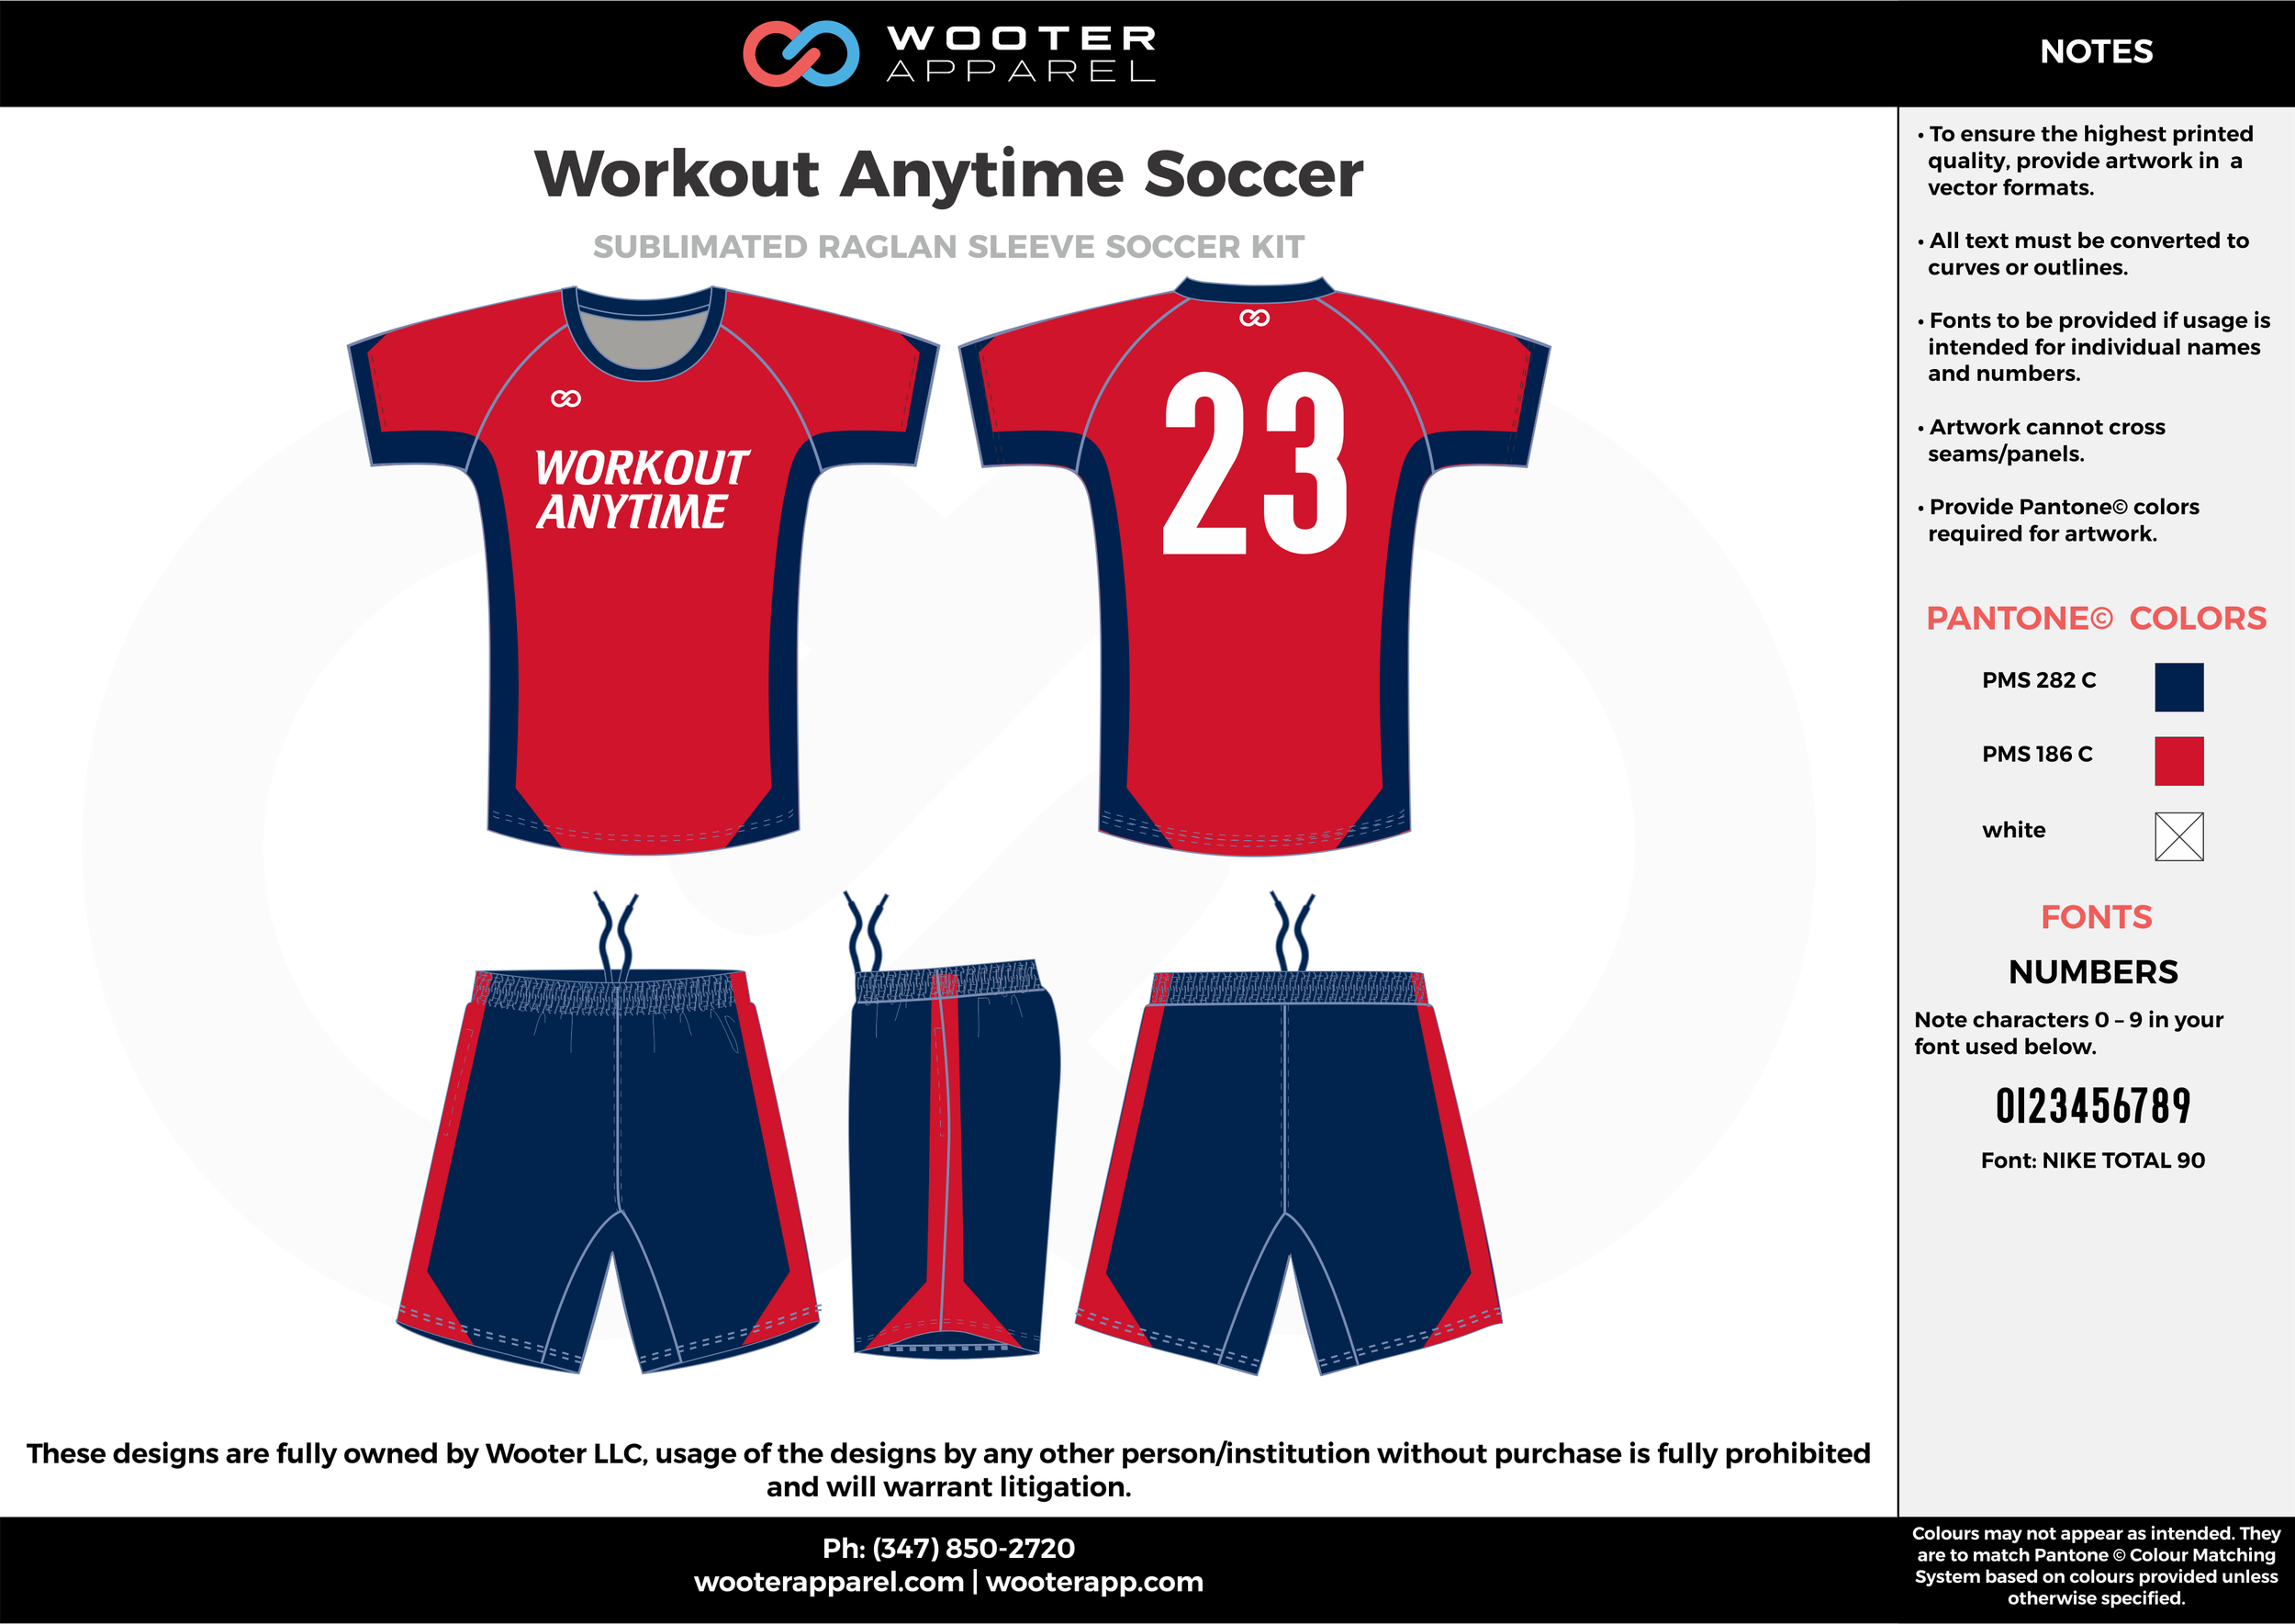 Workout Anytime Soccer royal blue red custom sublimated soccer uniform jersey shirt shorts